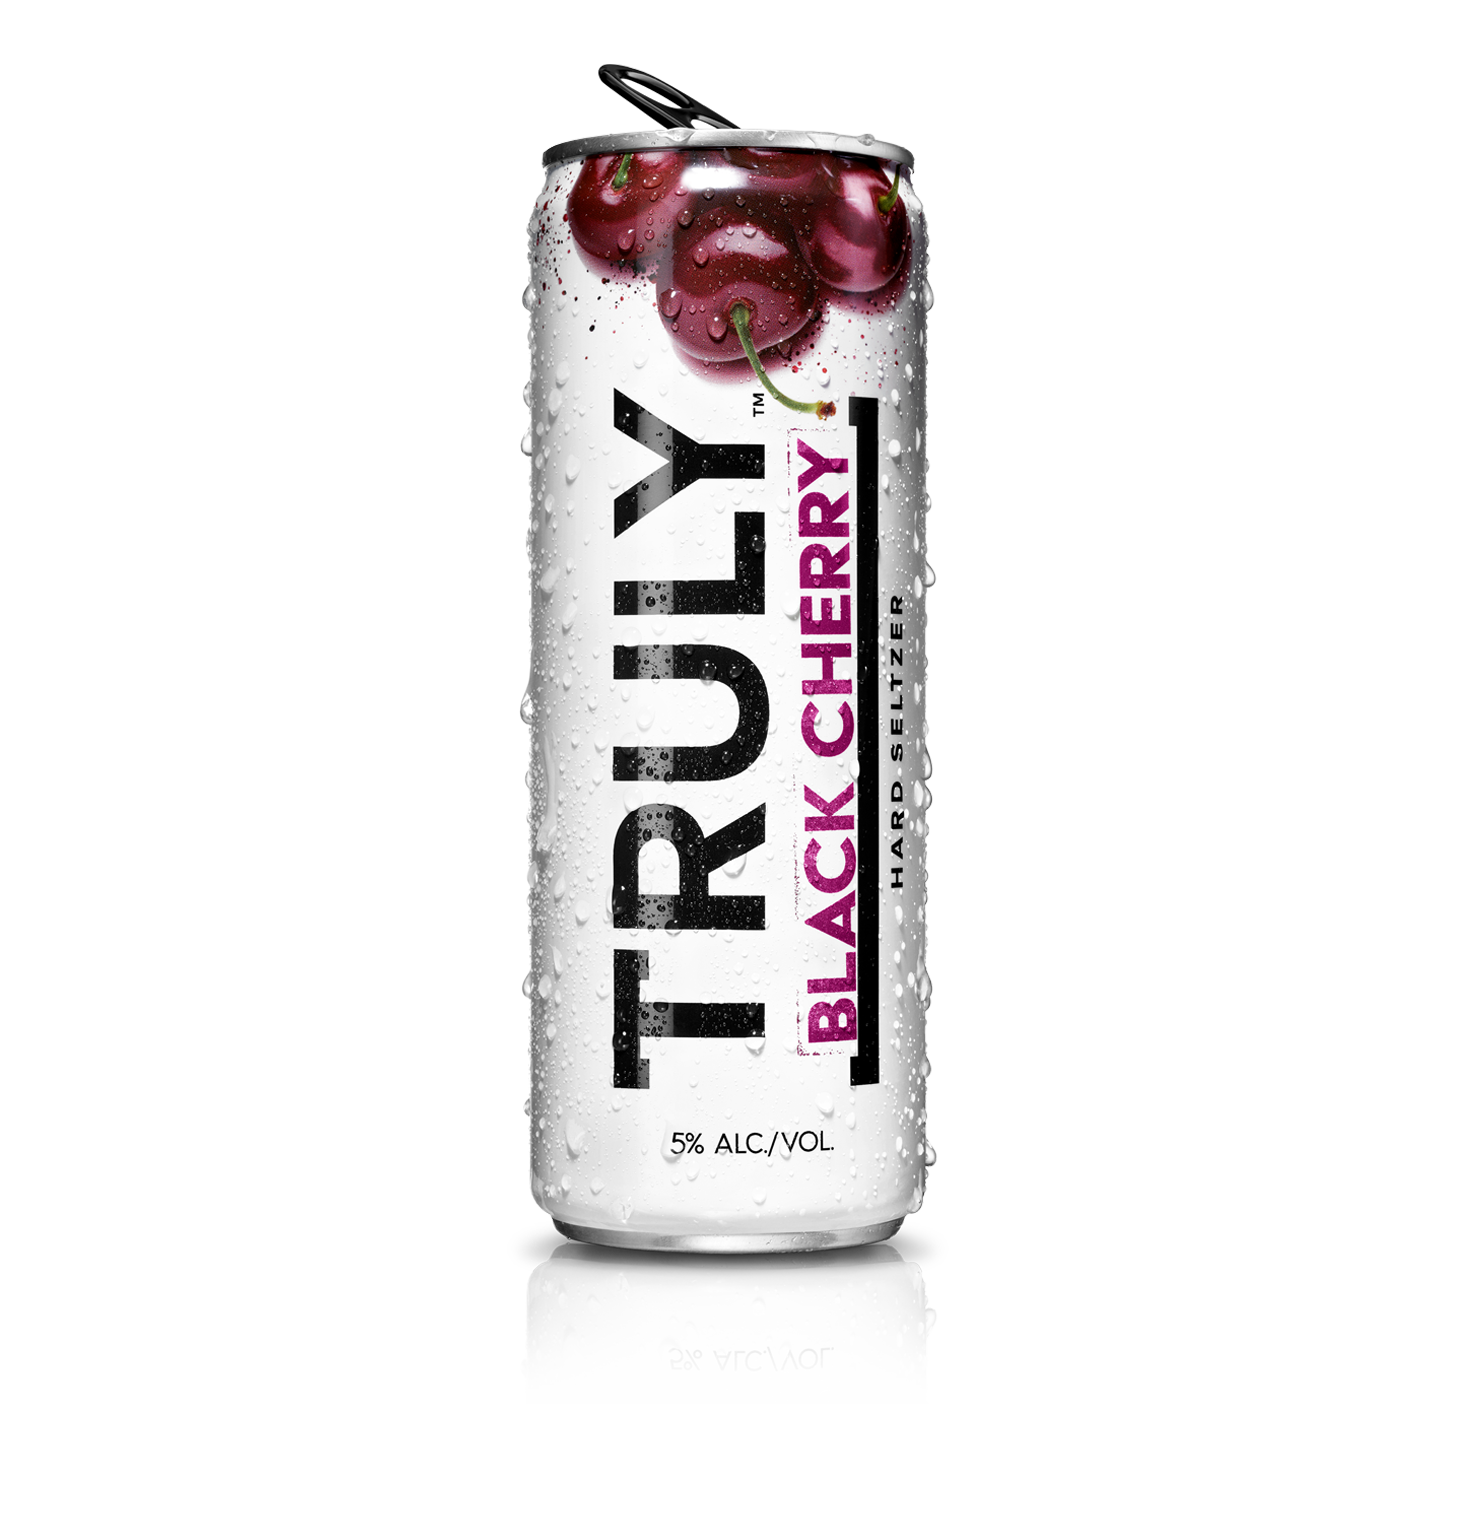 Truly Hard Seltzer Black Cherry ABV 5 % 6 Pack Can